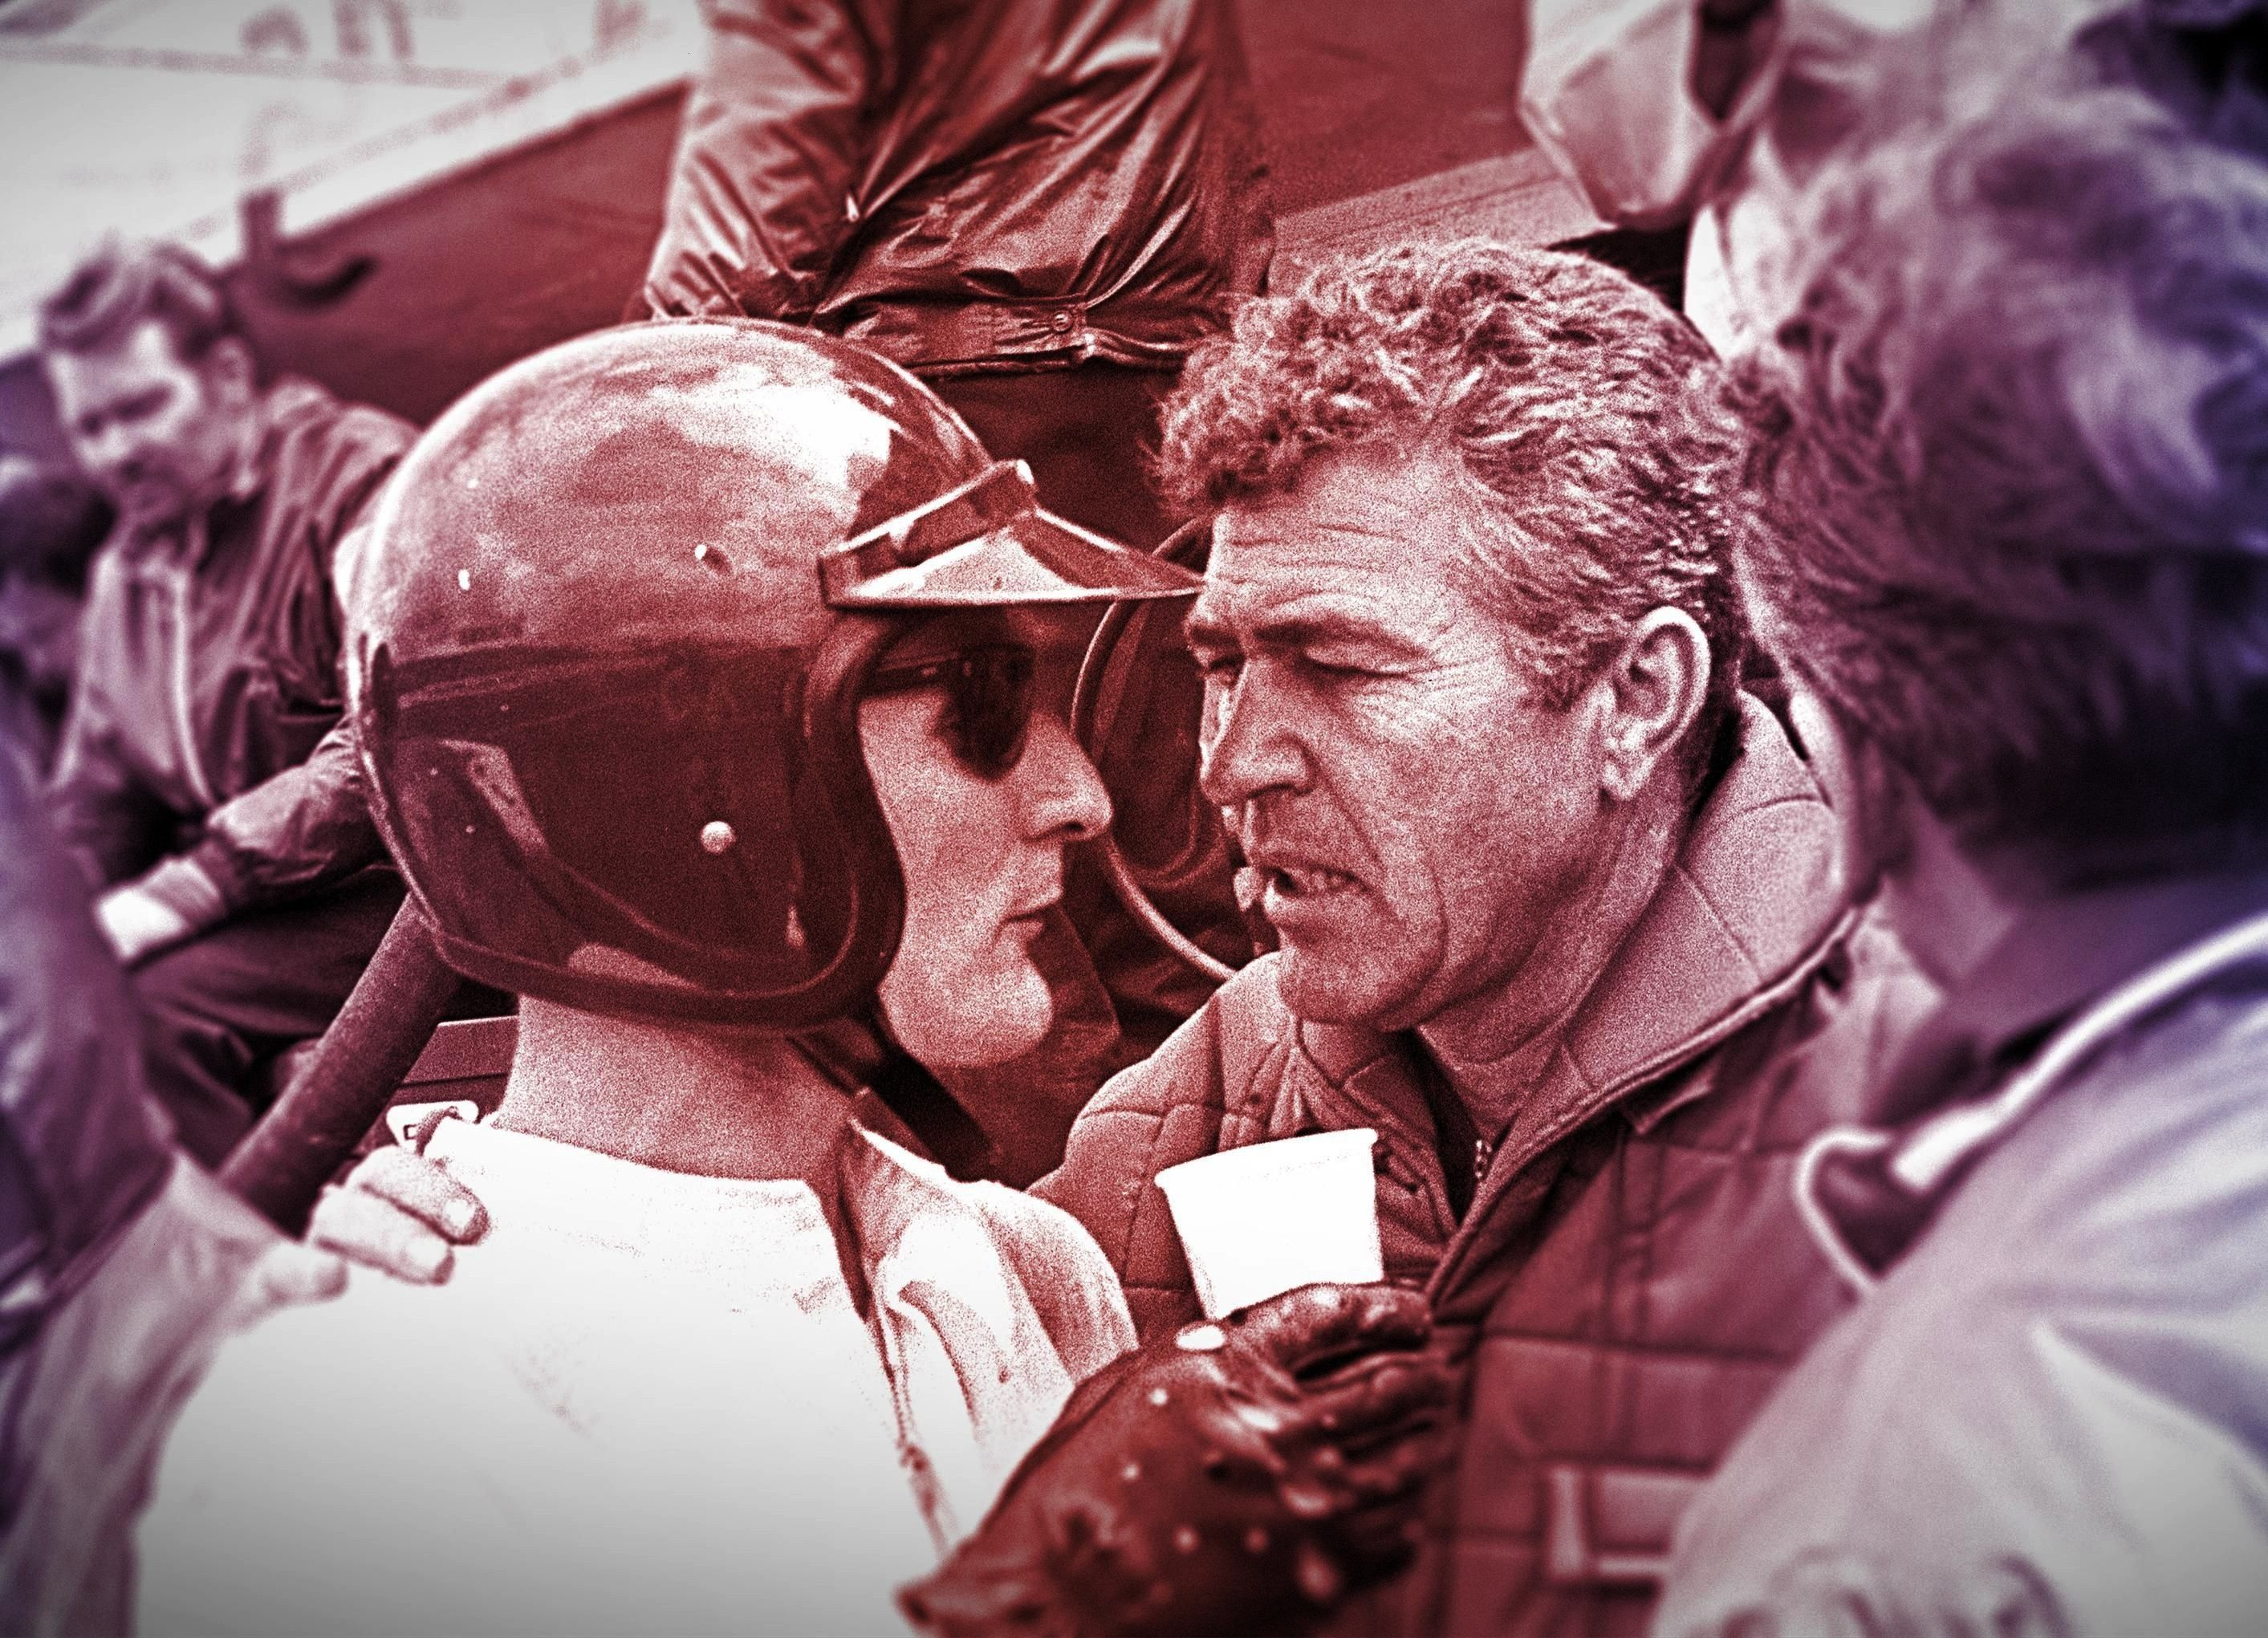 vs. Ferrari The Real Story Behind The Most Bitter Rivalry In Auto RacingFord vs. Ferrari The Real